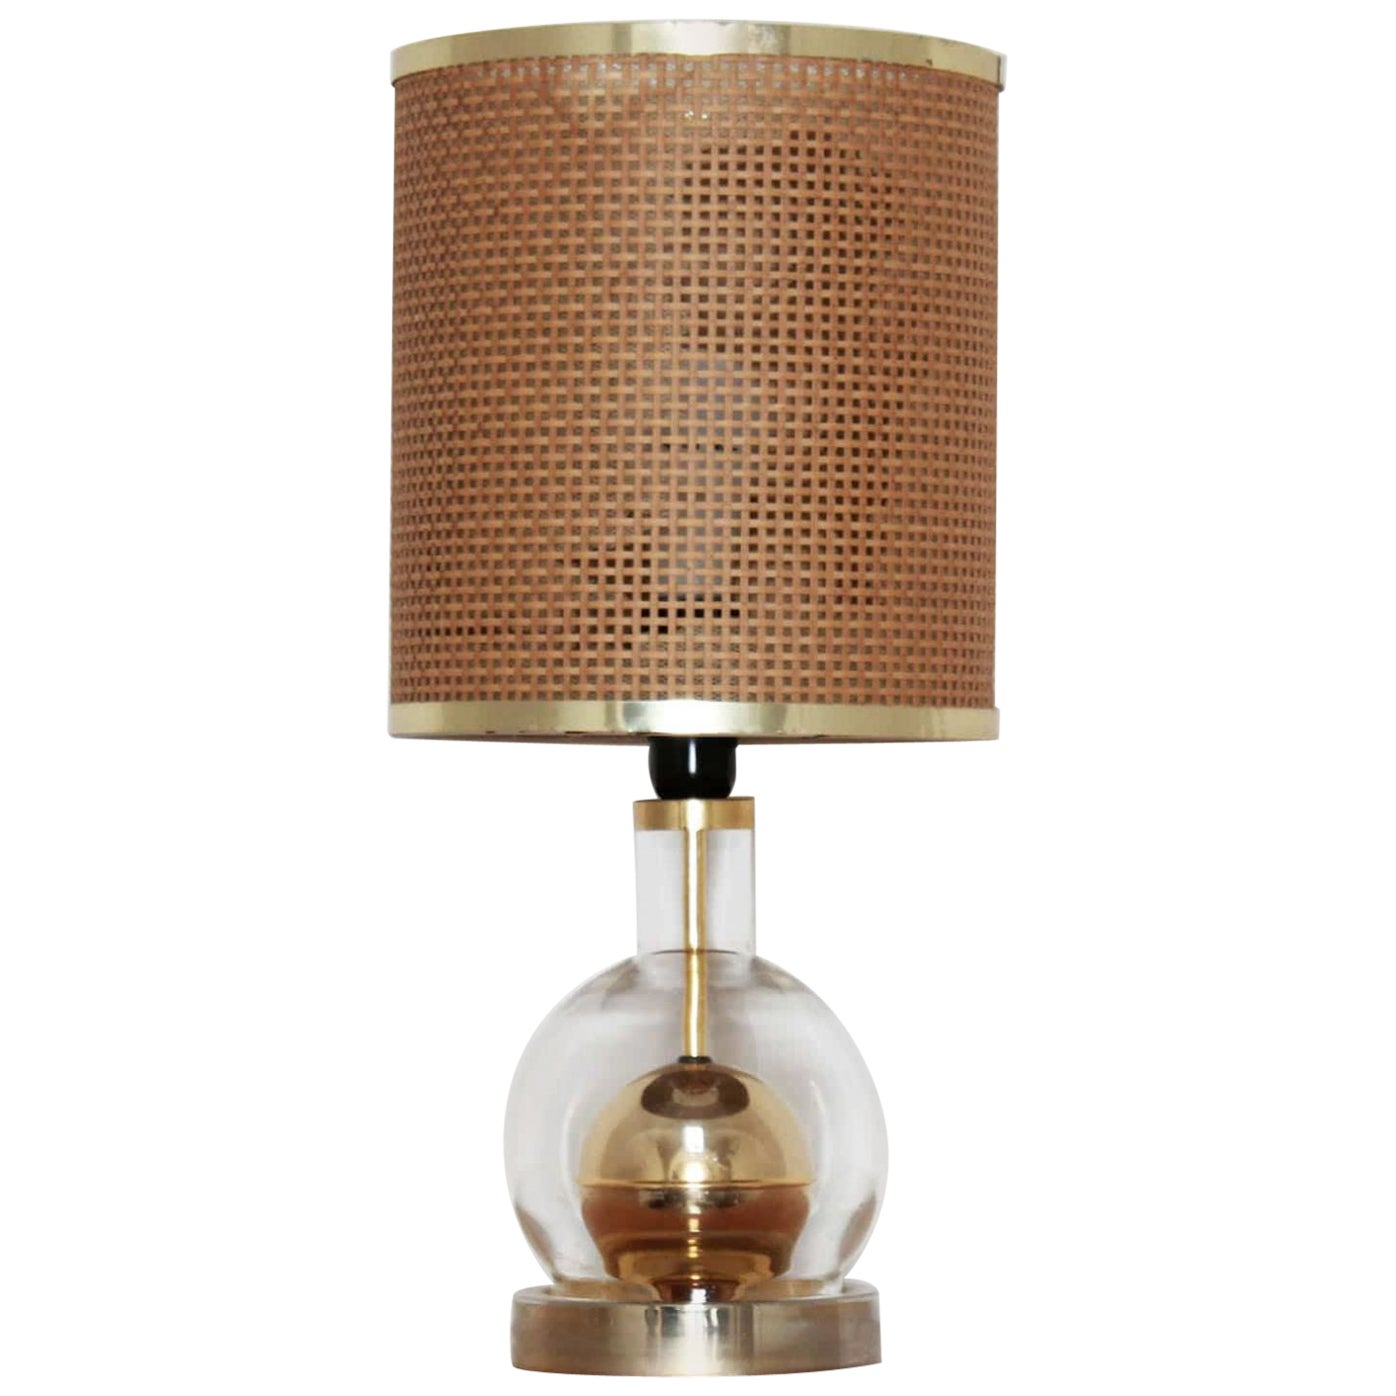 1970s Vintage Vimini and Brass Exotic Table Lamp